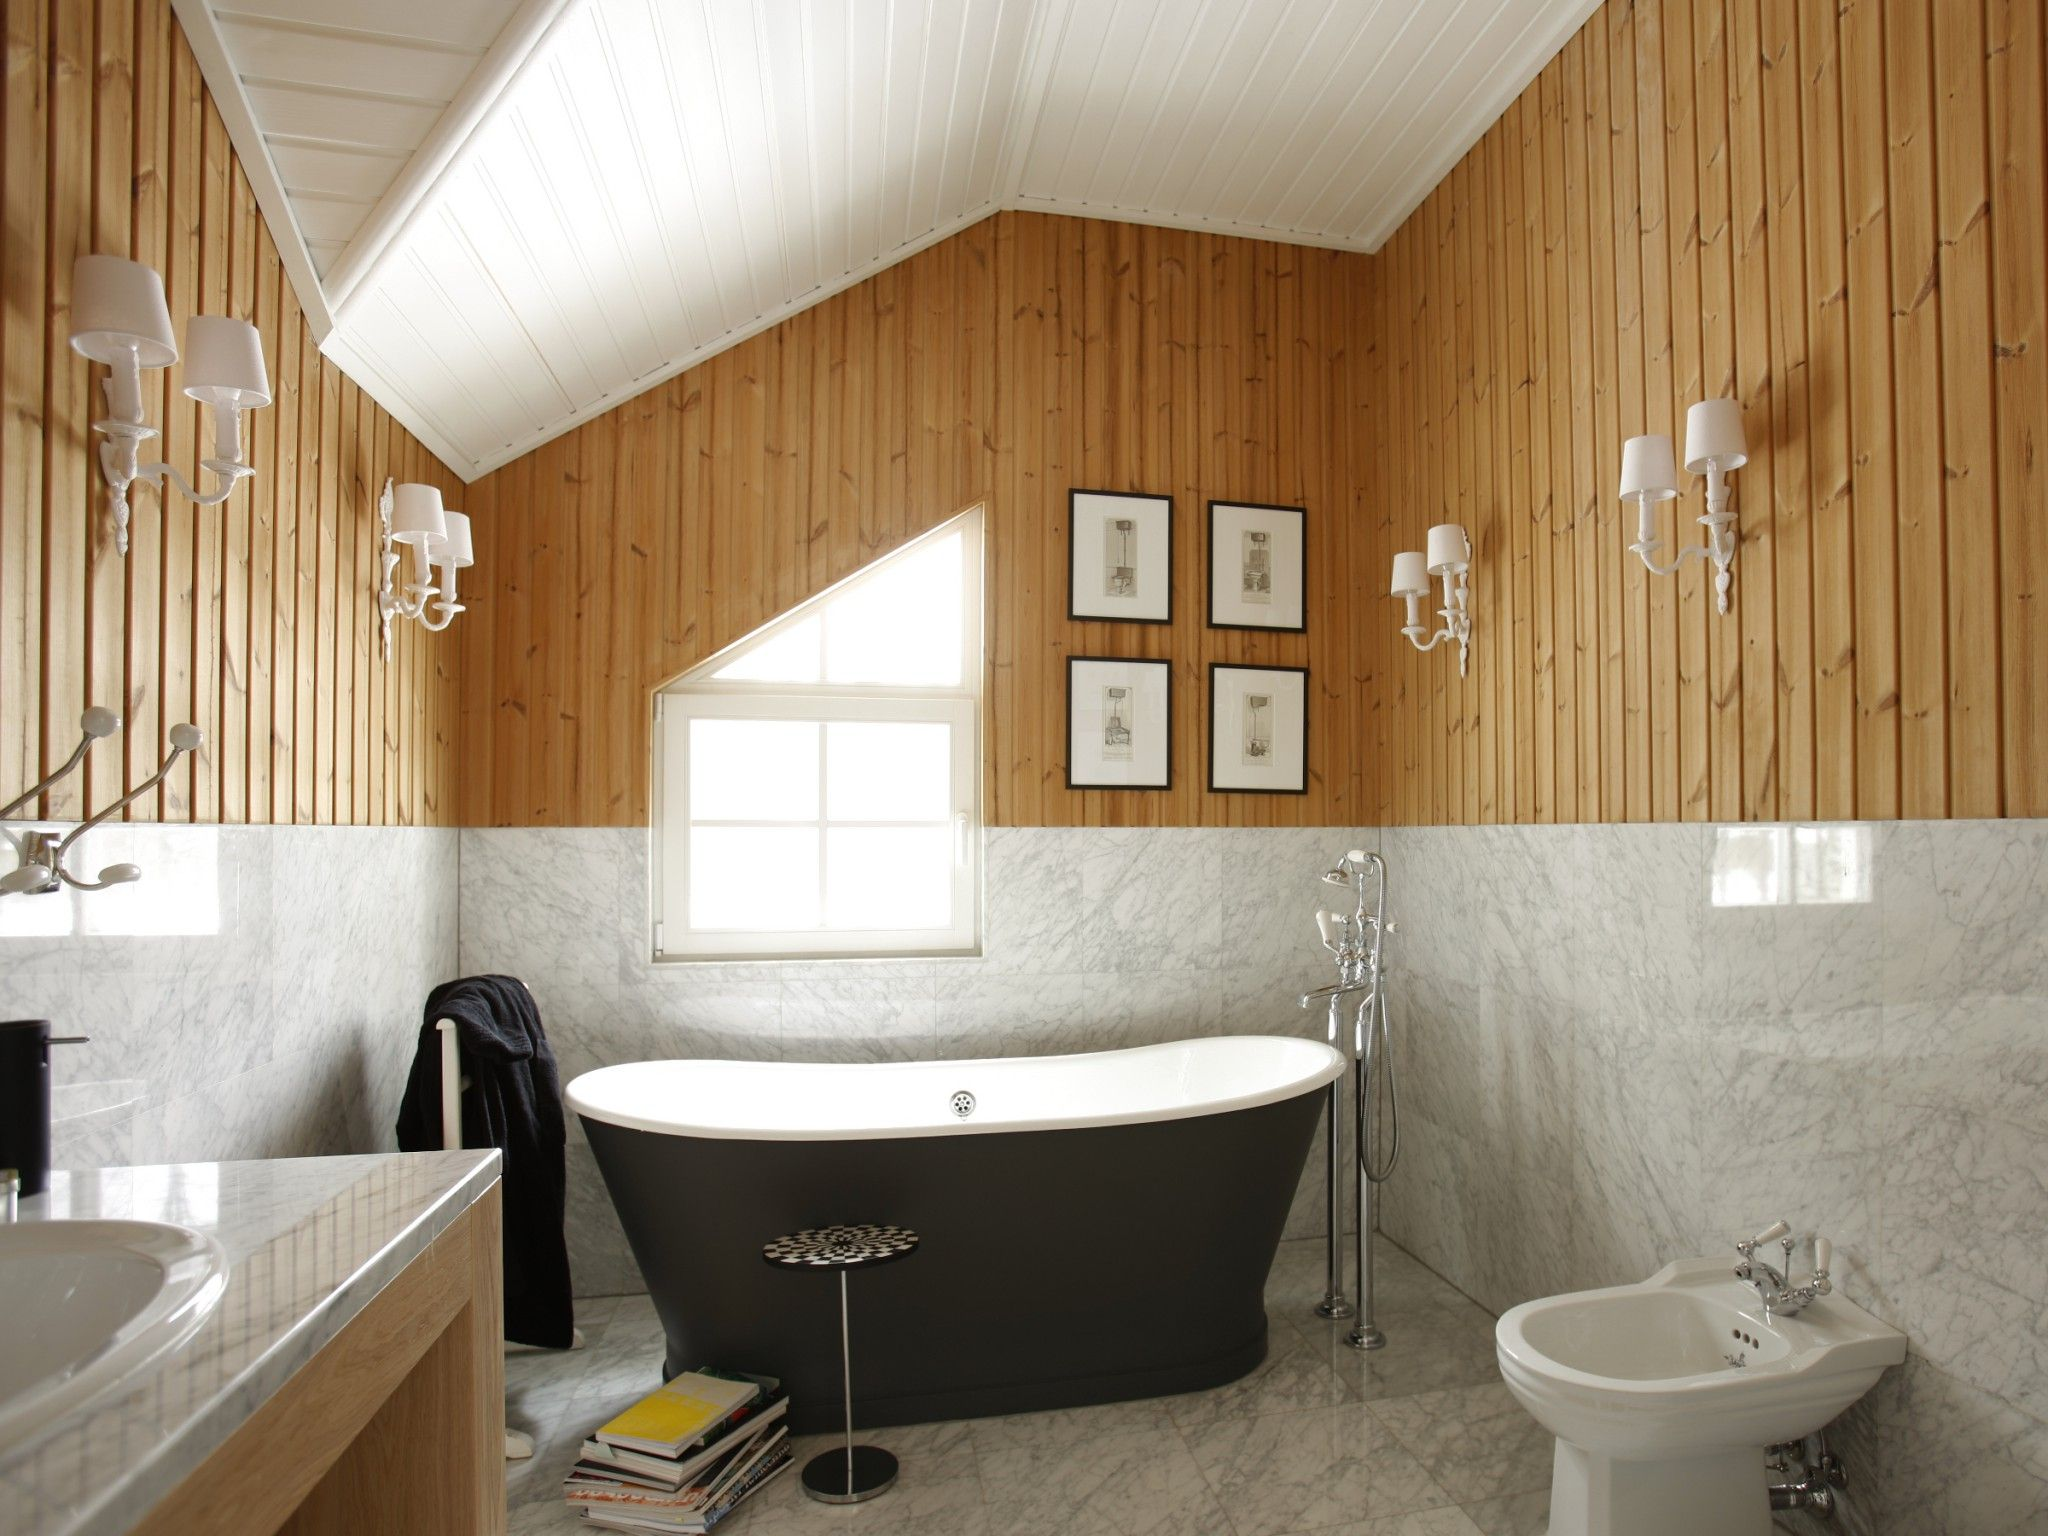 small design ideas of bathroom in country house. Black Bedroom Furniture Sets. Home Design Ideas